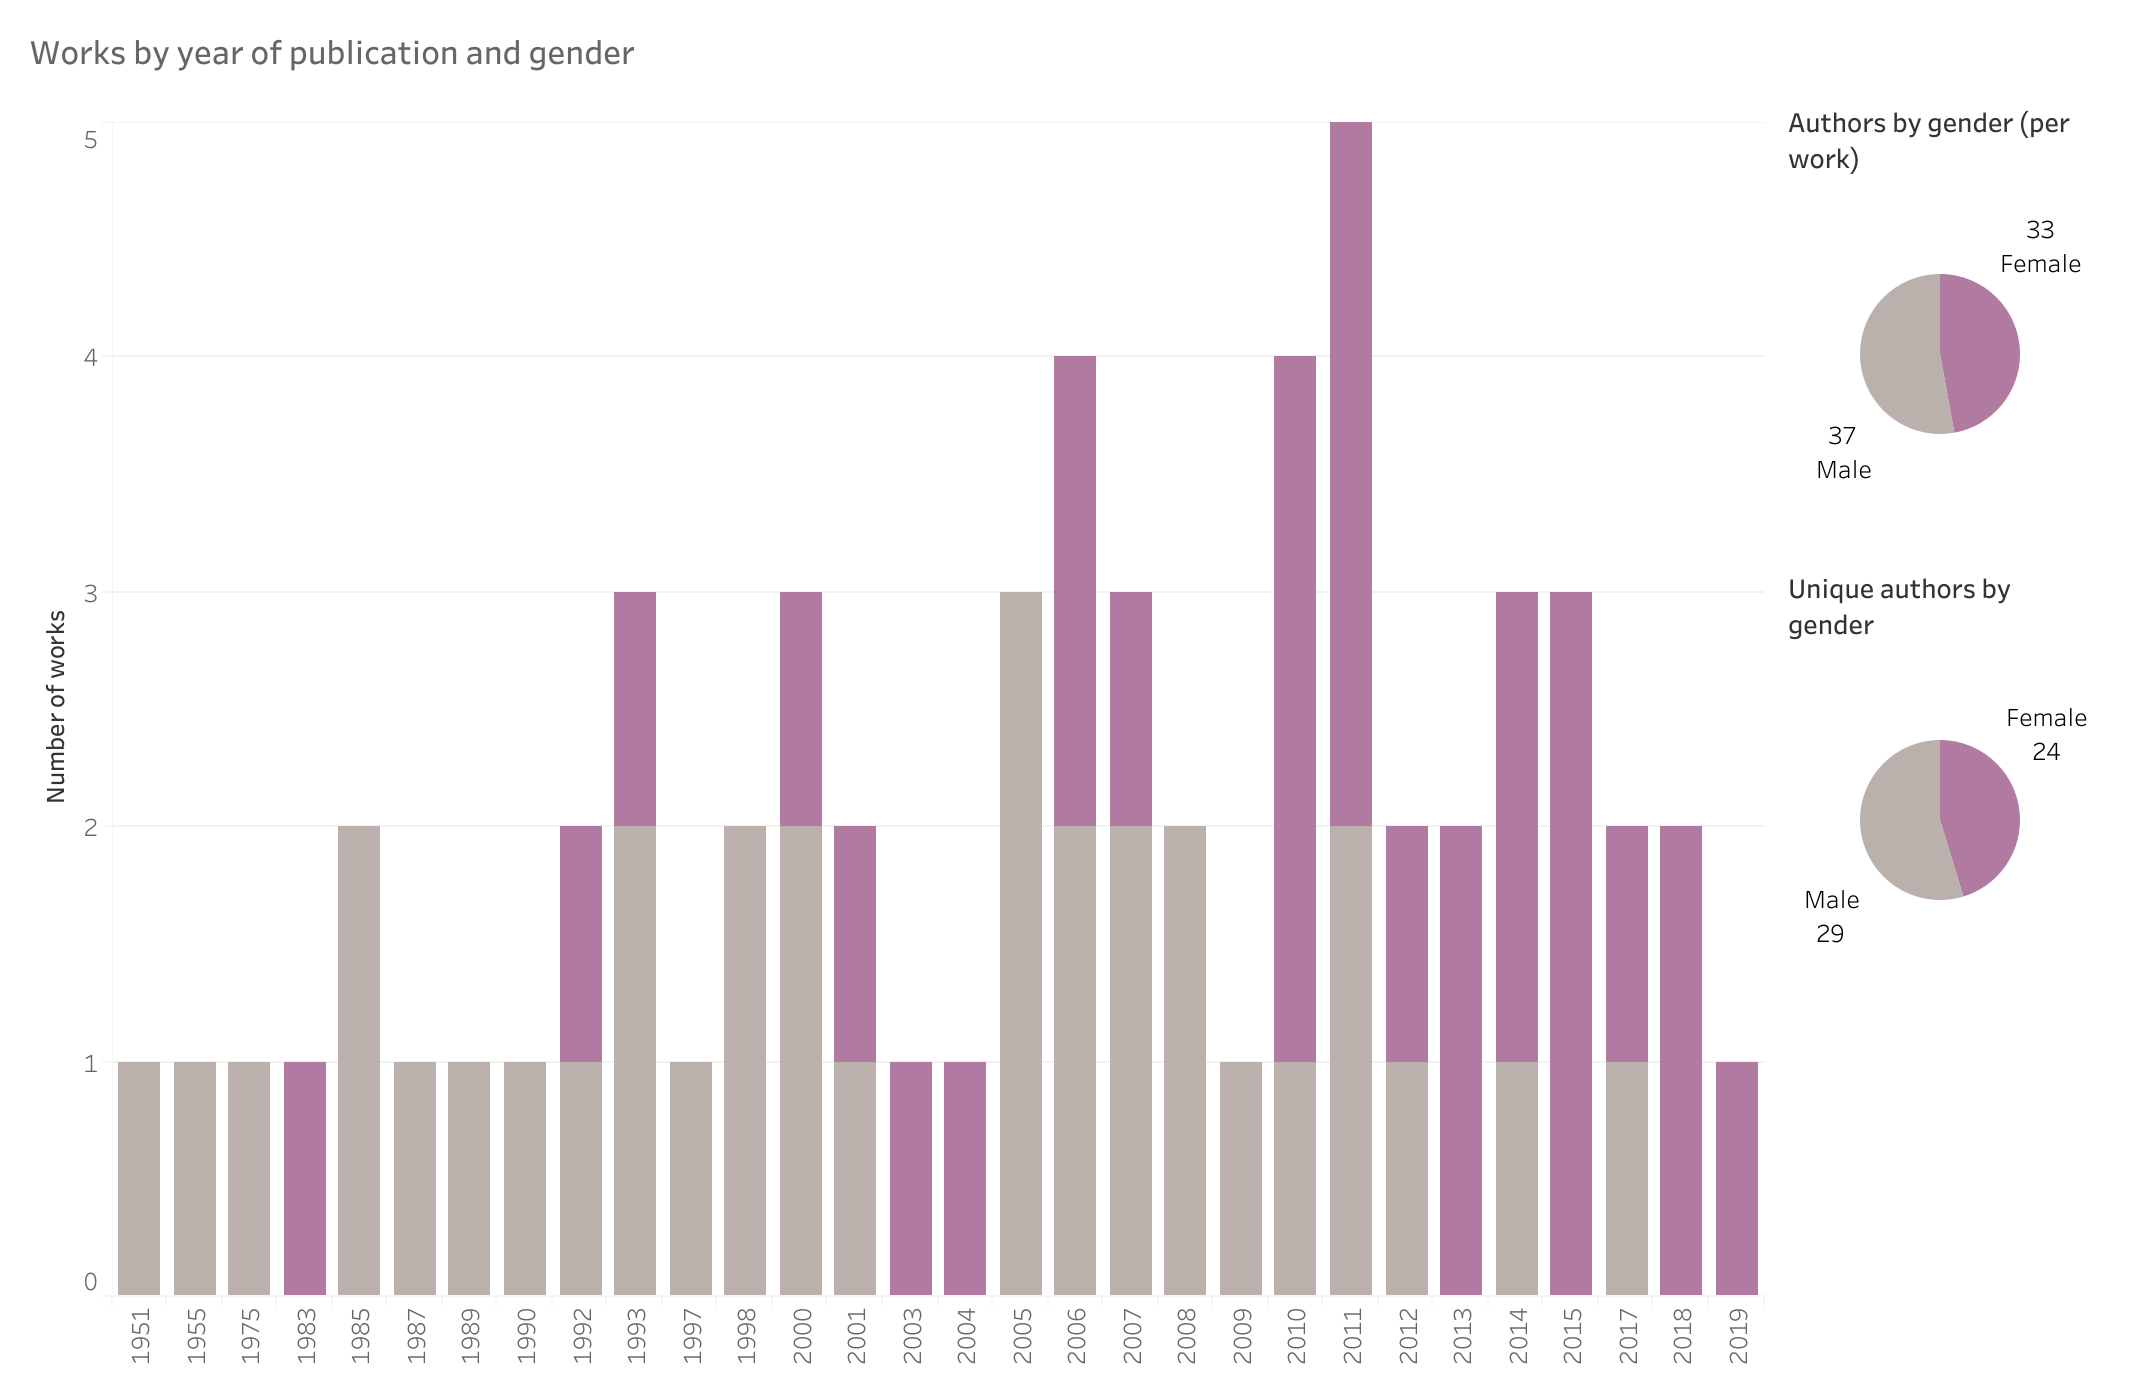 Chart of works by year and gender